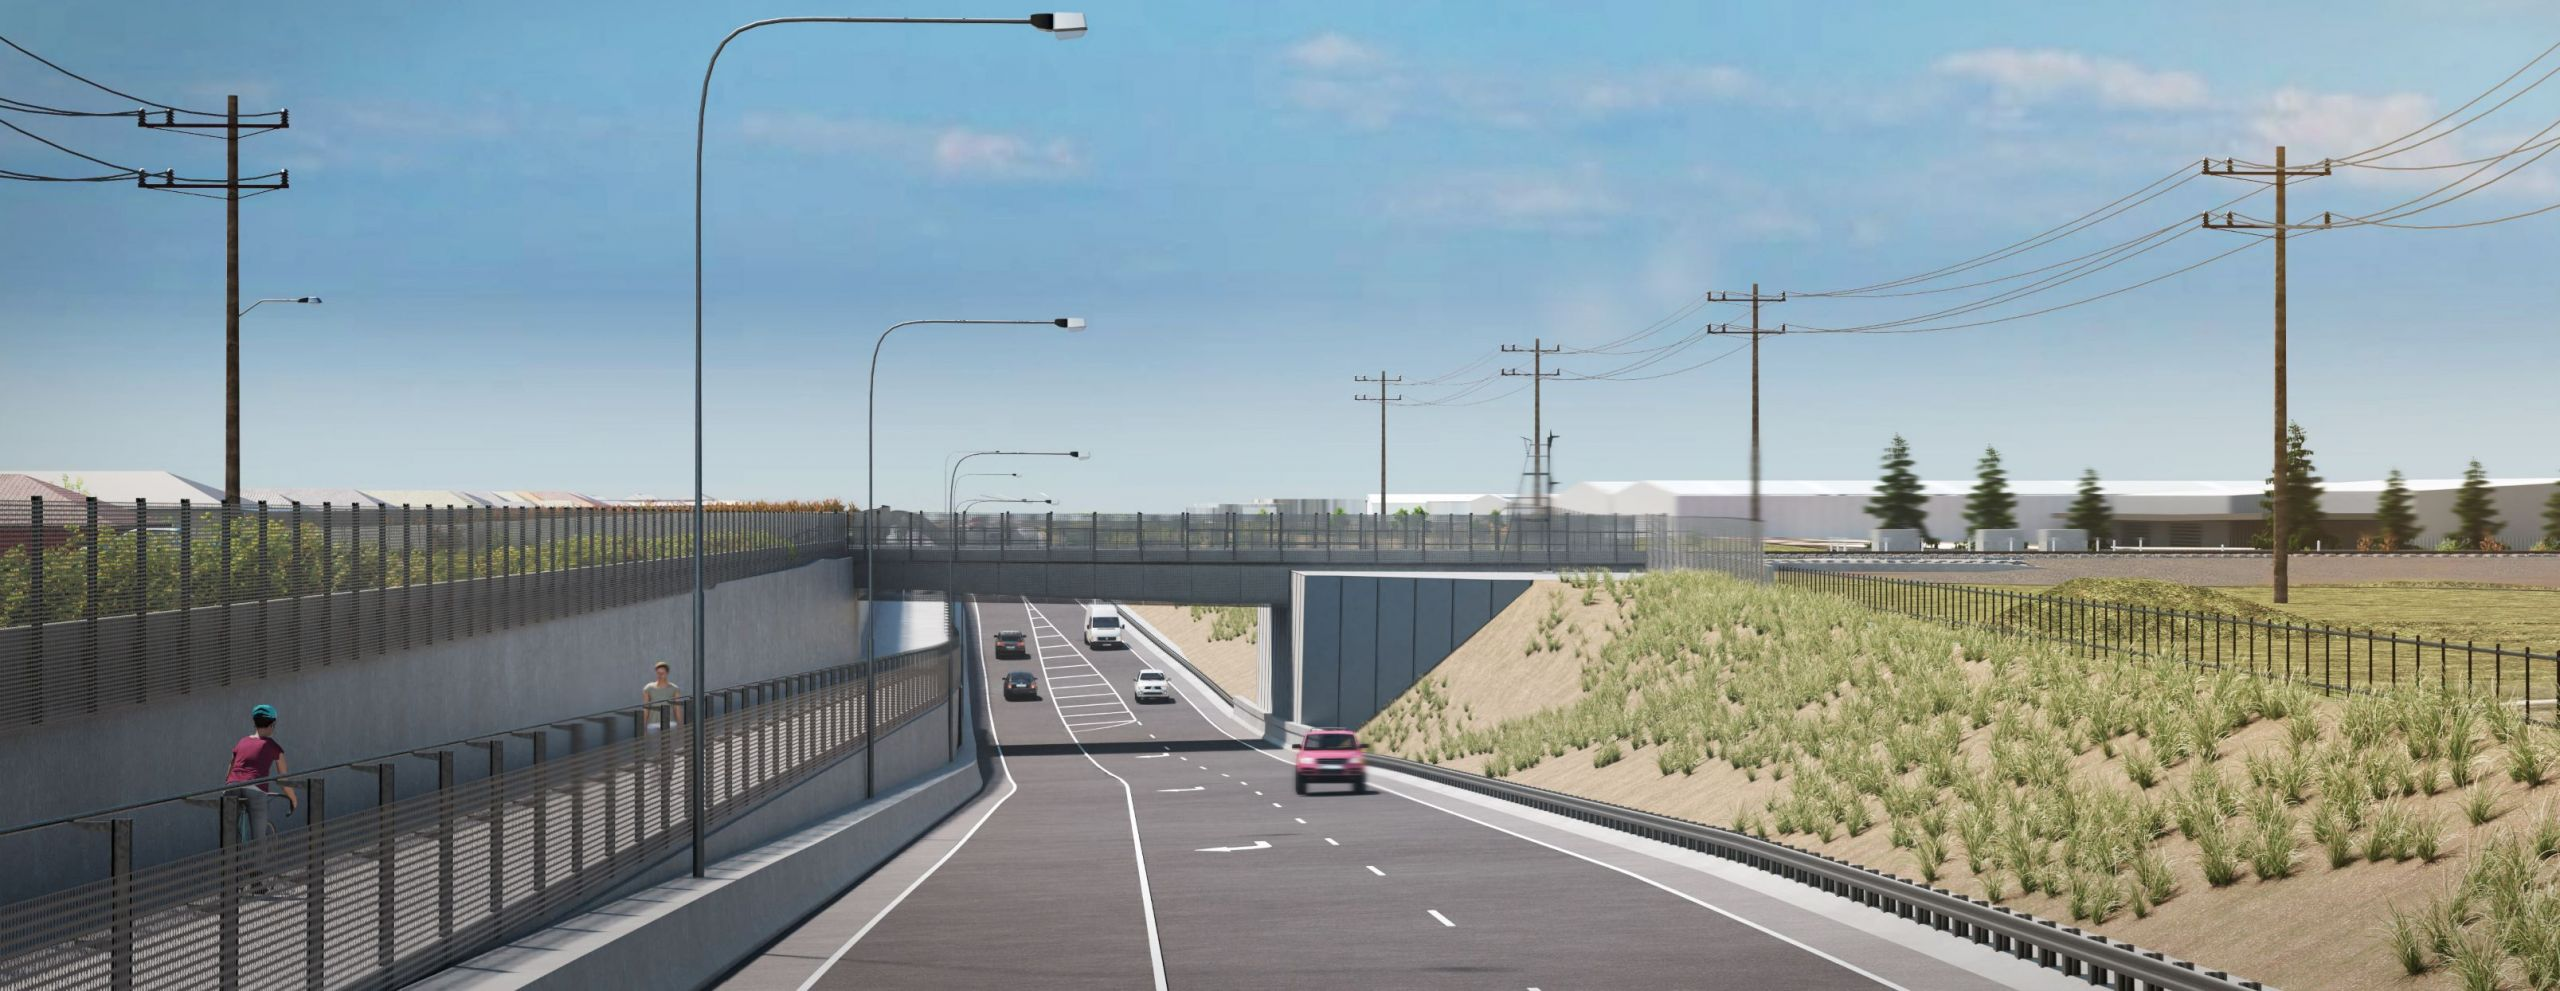 New Robinsons Road underpass, Deer Park – looking south